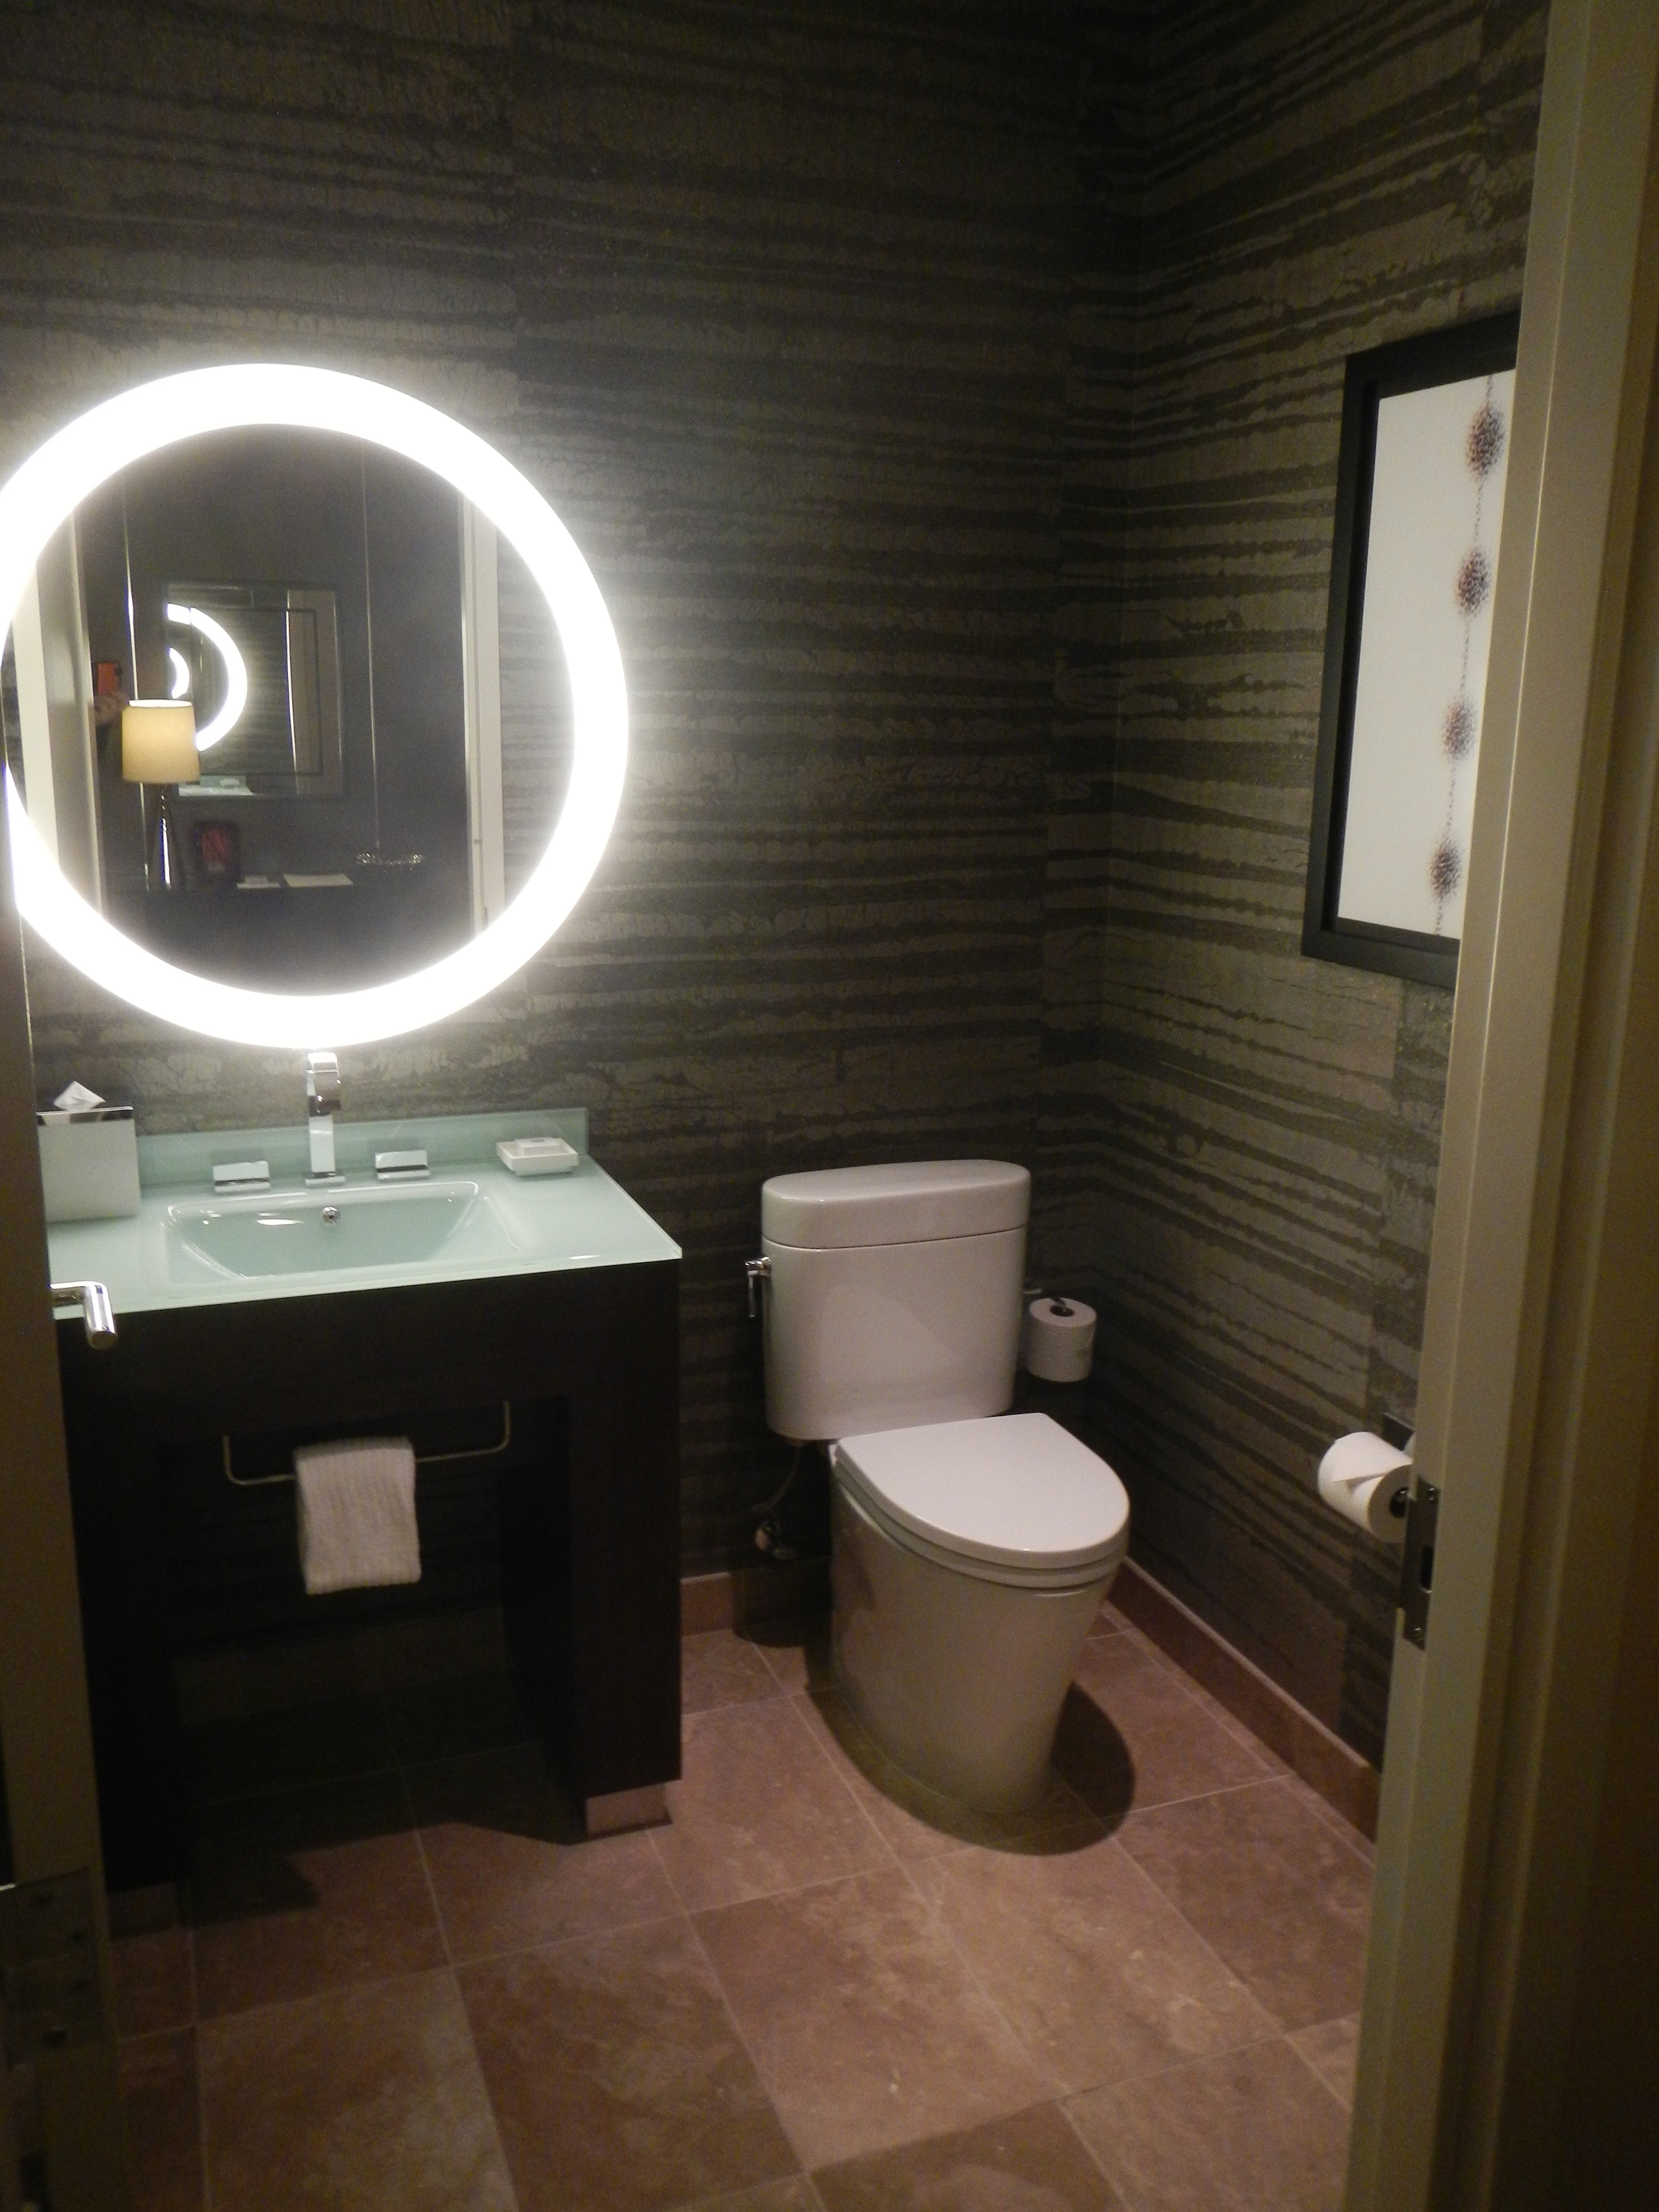 The first bathroom in our Sky Suite.